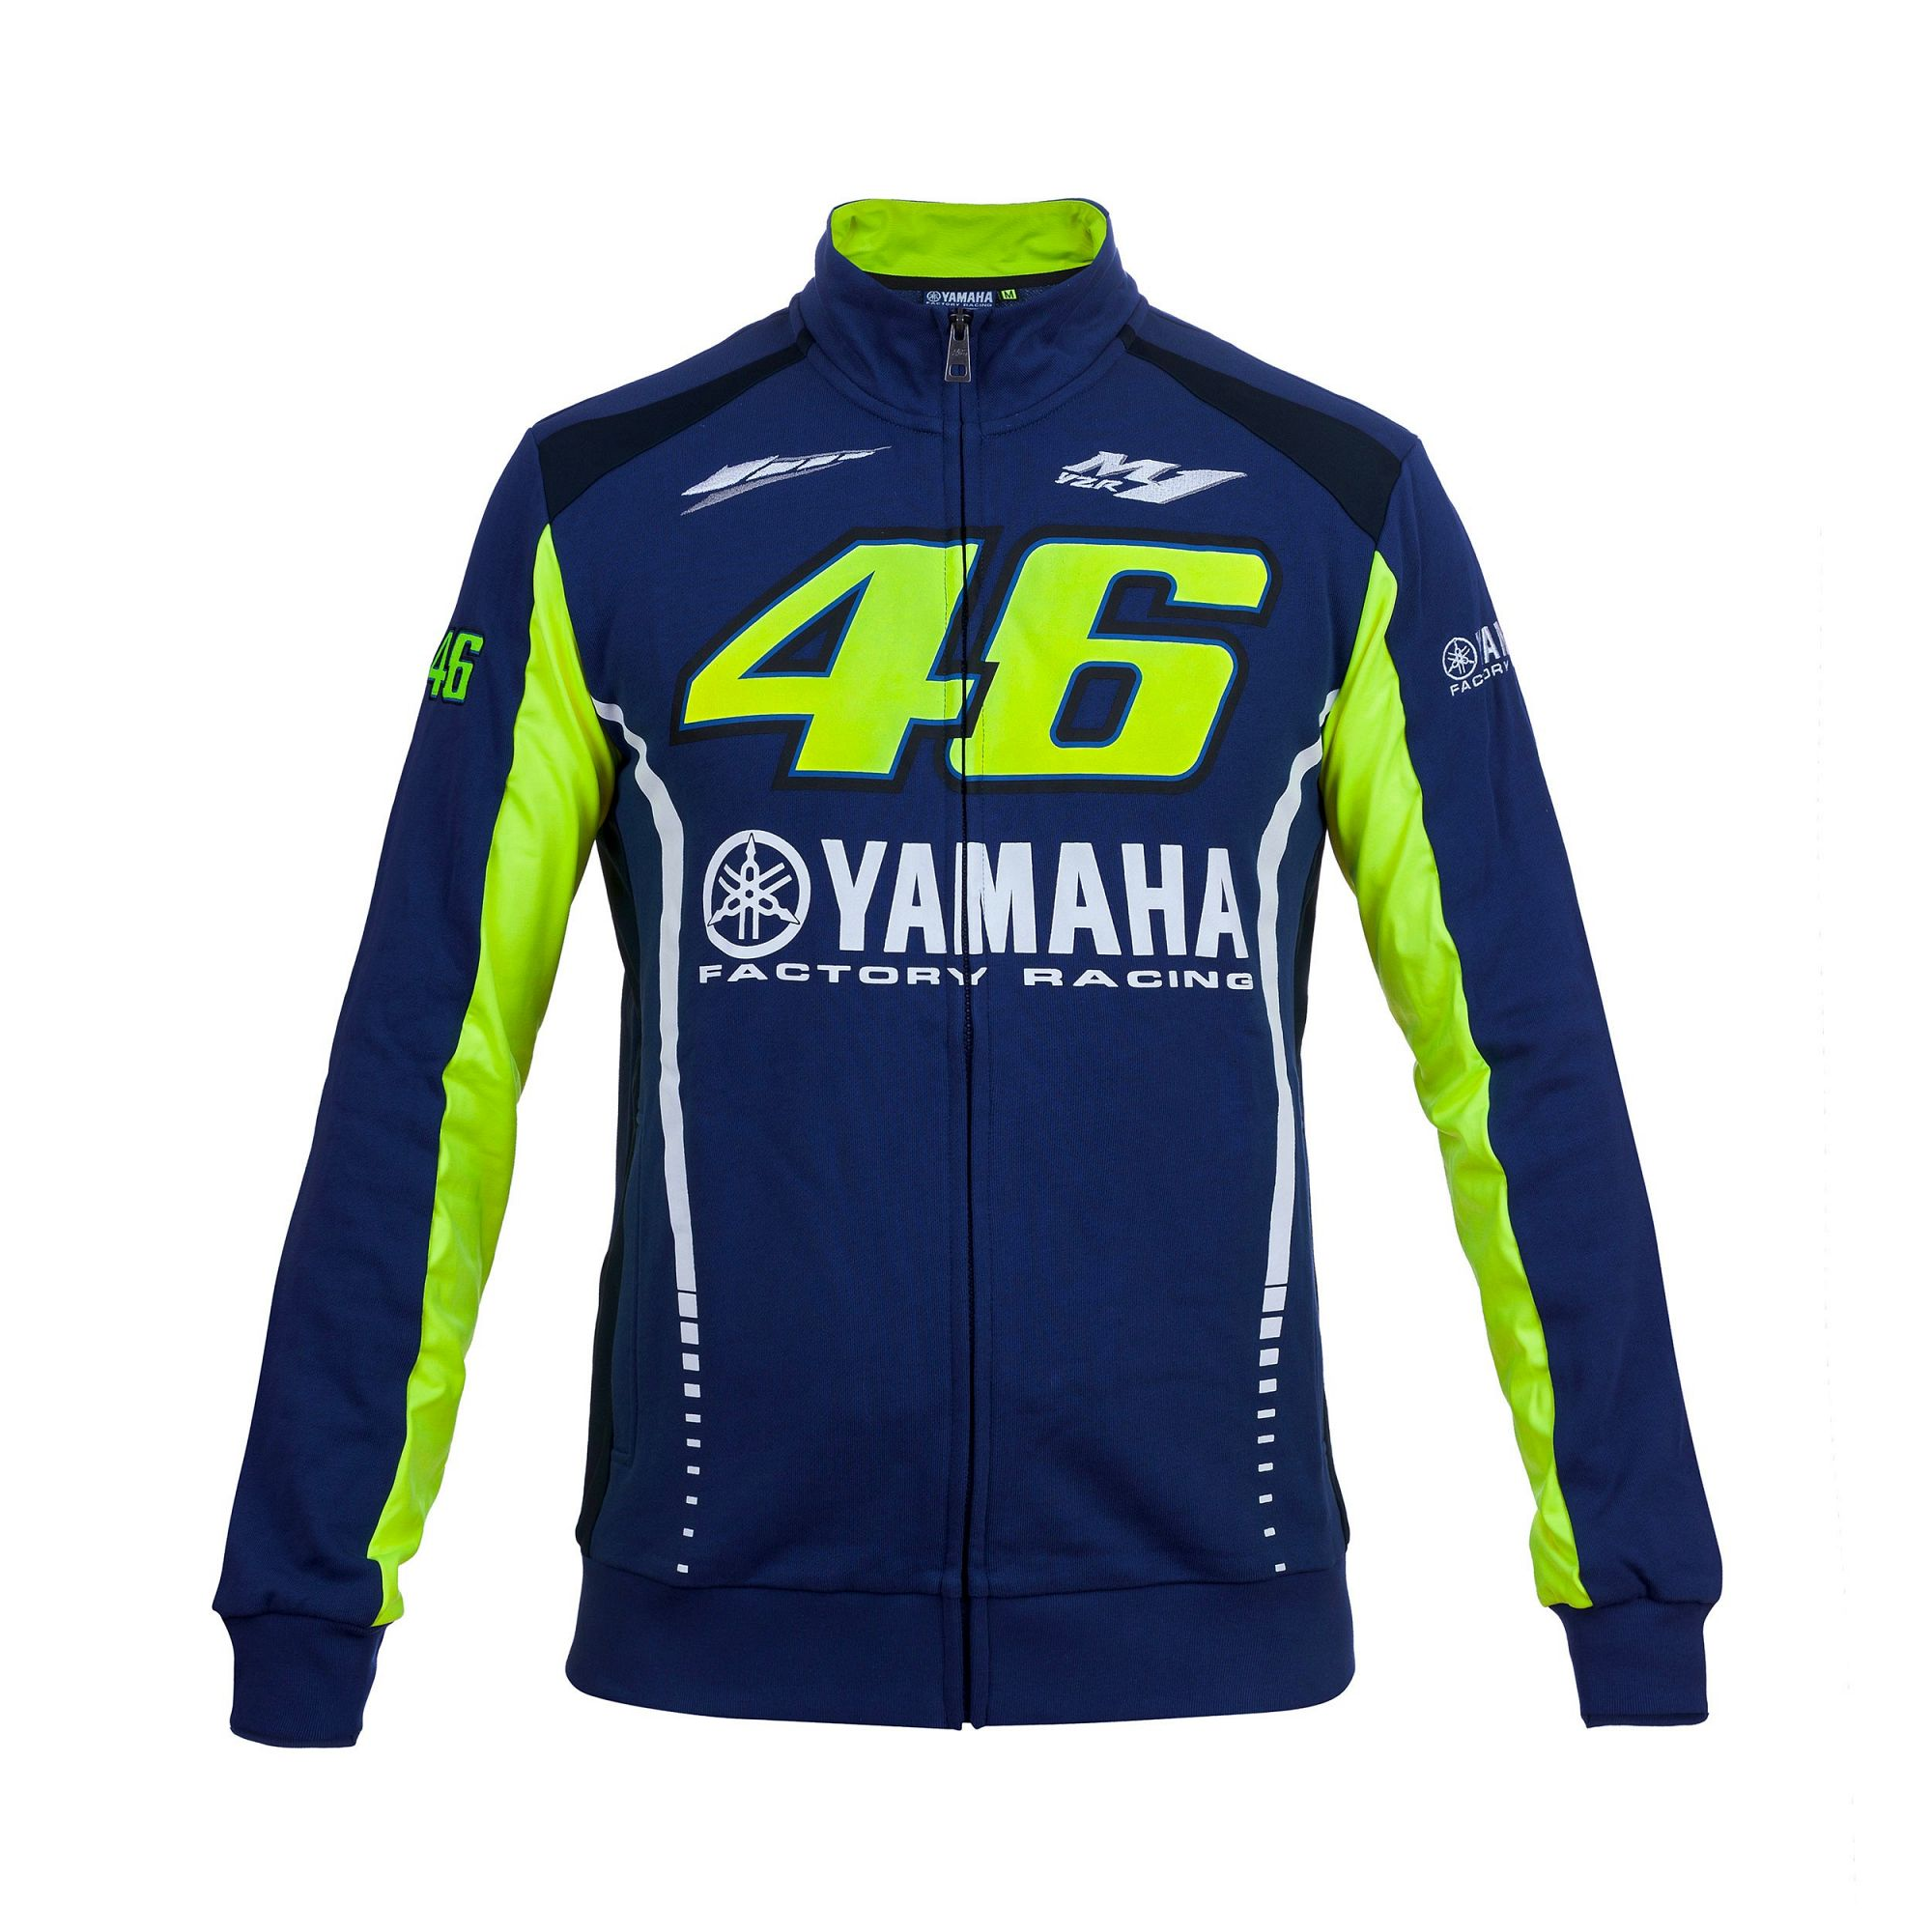 Moto GP Motorcycle Riding Zip Hoodie Crew Fleece for Yamaha Racing Blue Mens FELPA Zip-up Sweater недорго, оригинальная цена